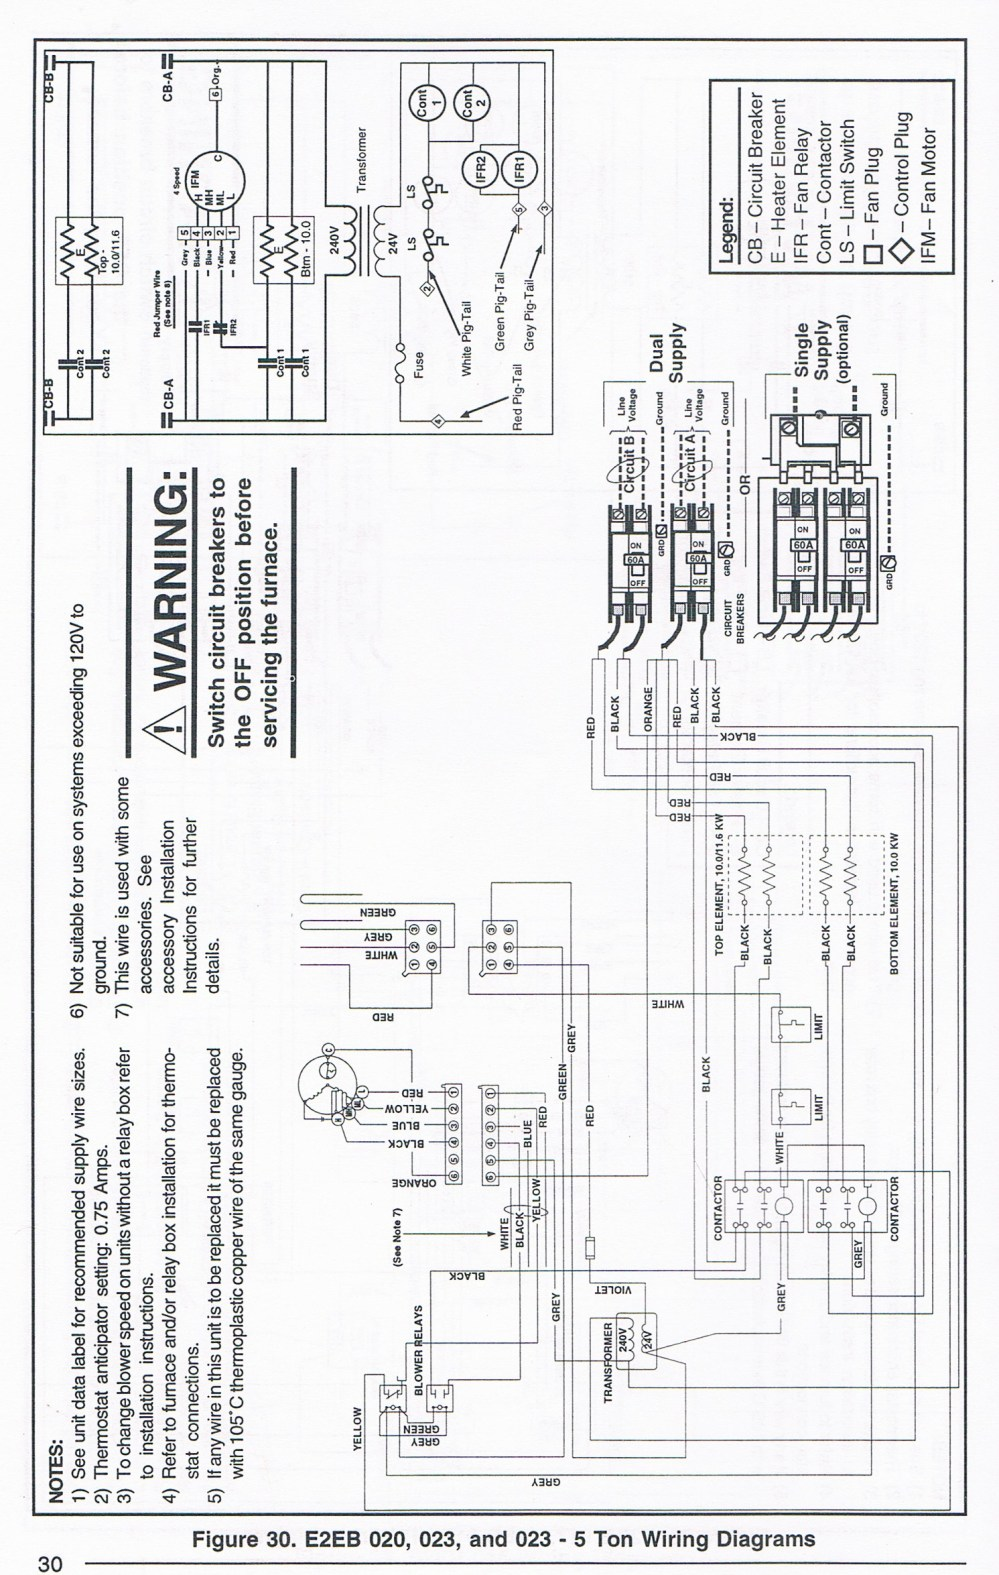 medium resolution of wrg 3991 e2eb 012ha wiring diagram wiring mobile diagram home furnace e2e 012h